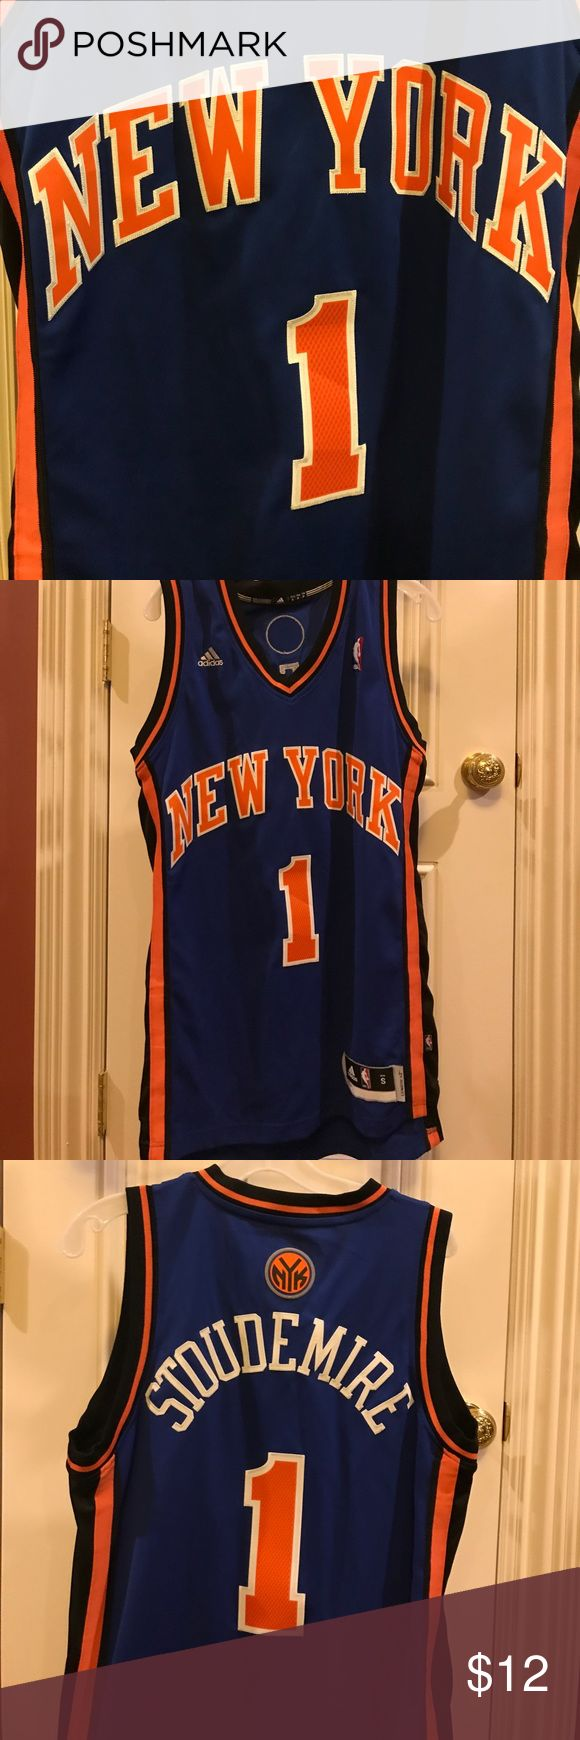 Mens New York Knicks Stoudemire adidas jersey Never worn. In perfect condition. Mens Small. Stitched and 100% authentic. Bought it from MSG. adidas Shirts Tank Tops